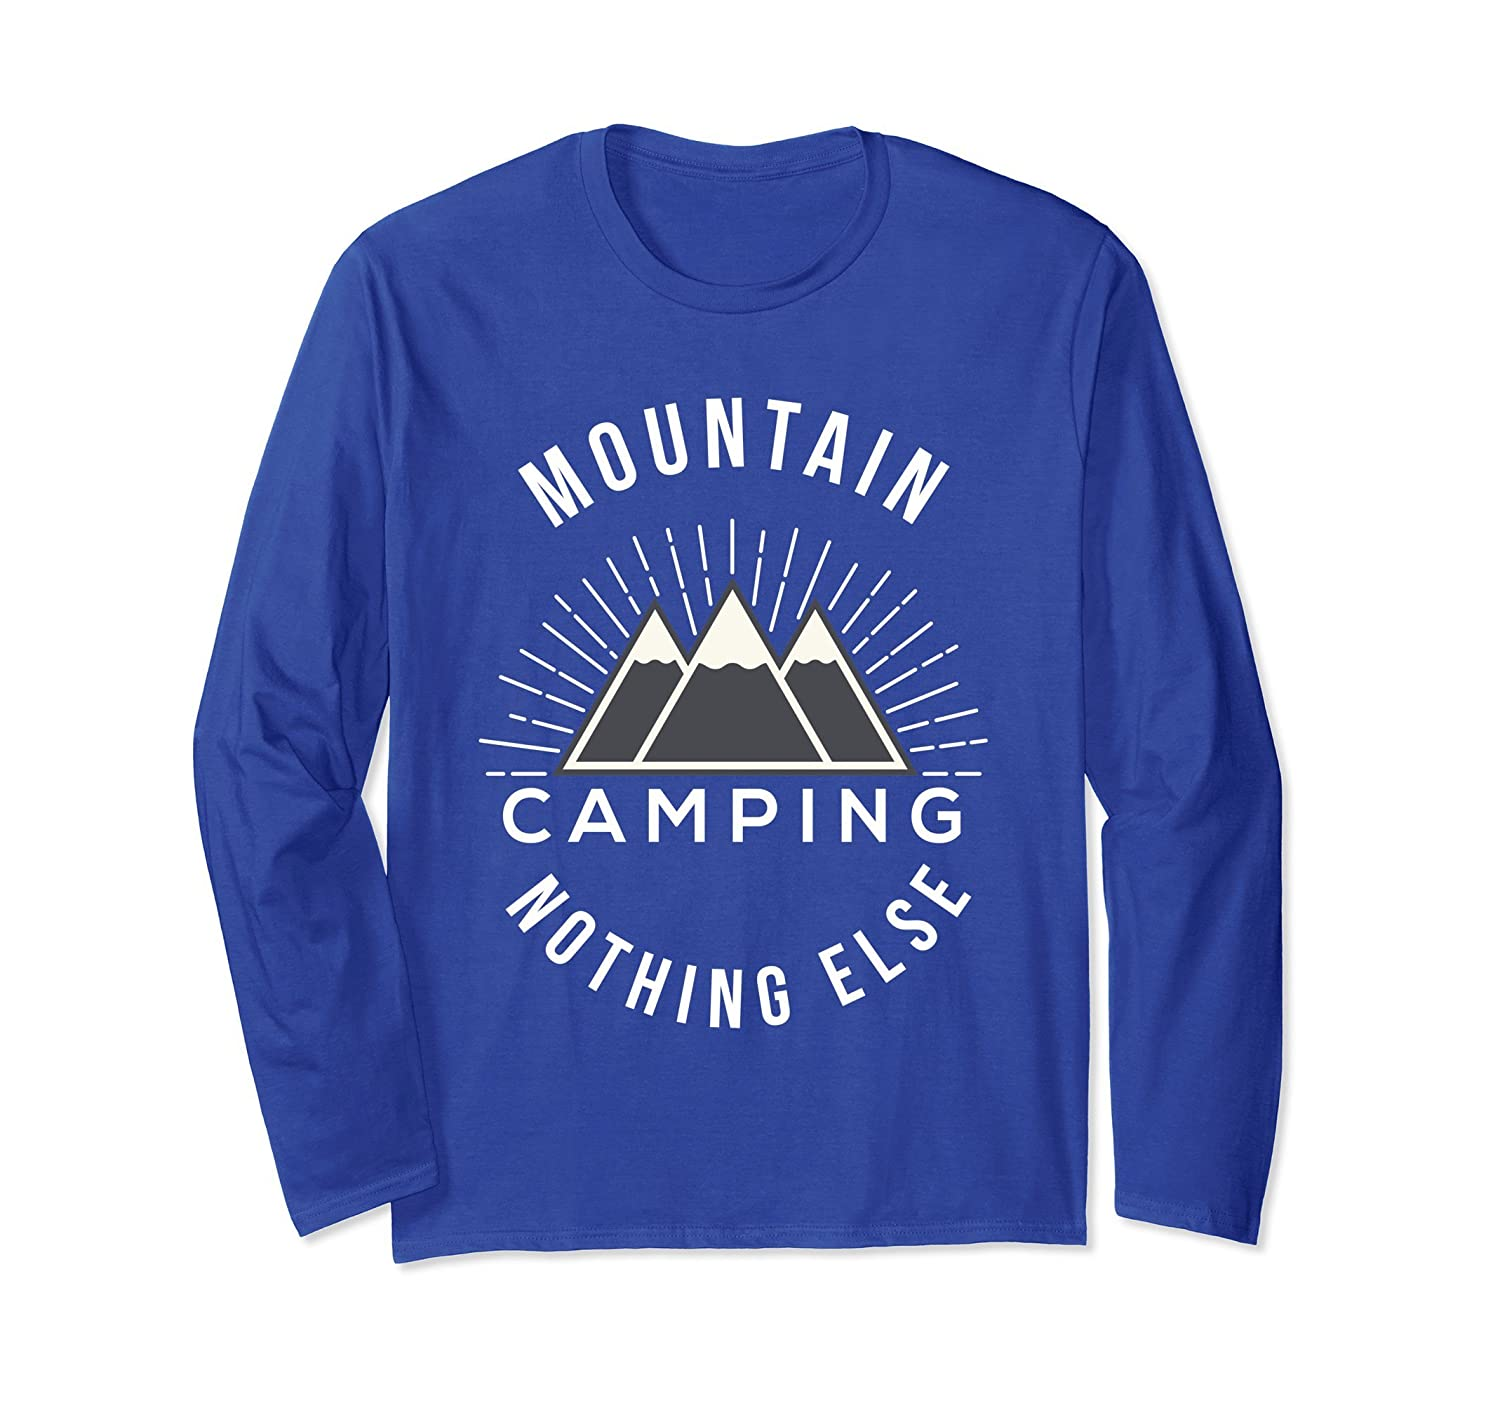 Camping Long Sleeve T-shirt for Men Women Girls Boys Toddler-mt